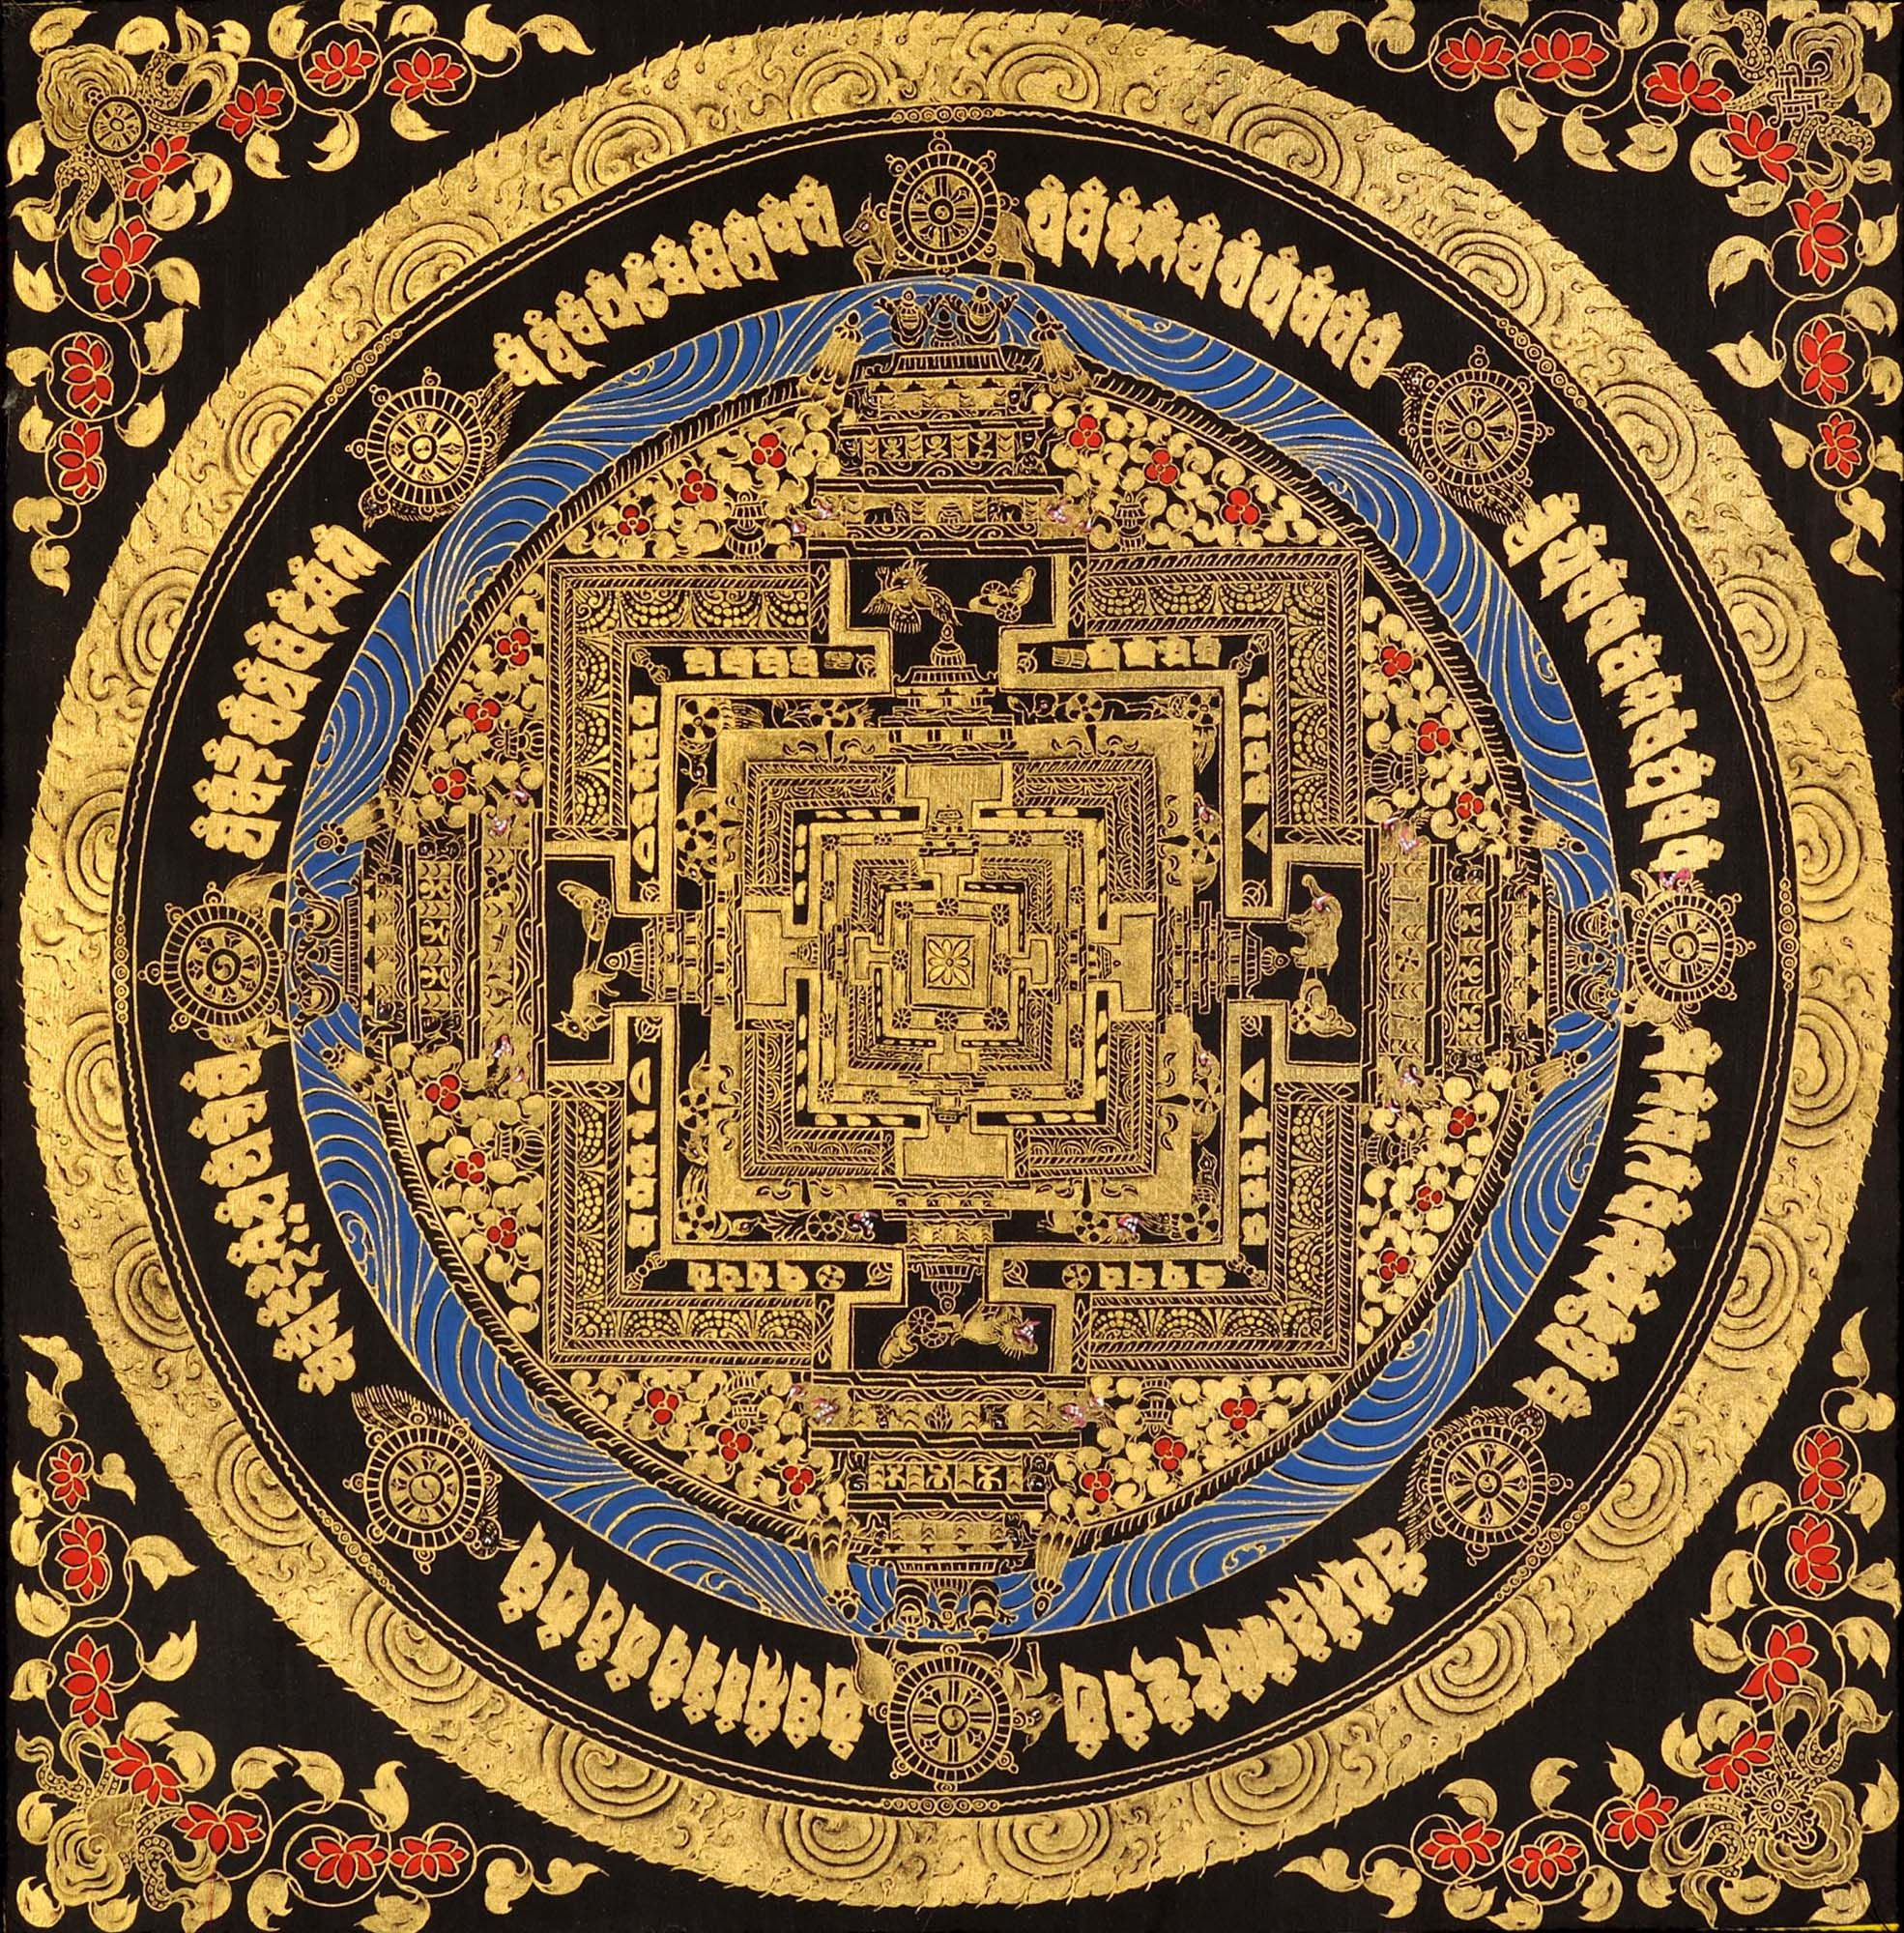 Hinducosmos Kalachakra Mandala Tibetan Thangka Painting Via Exotic India